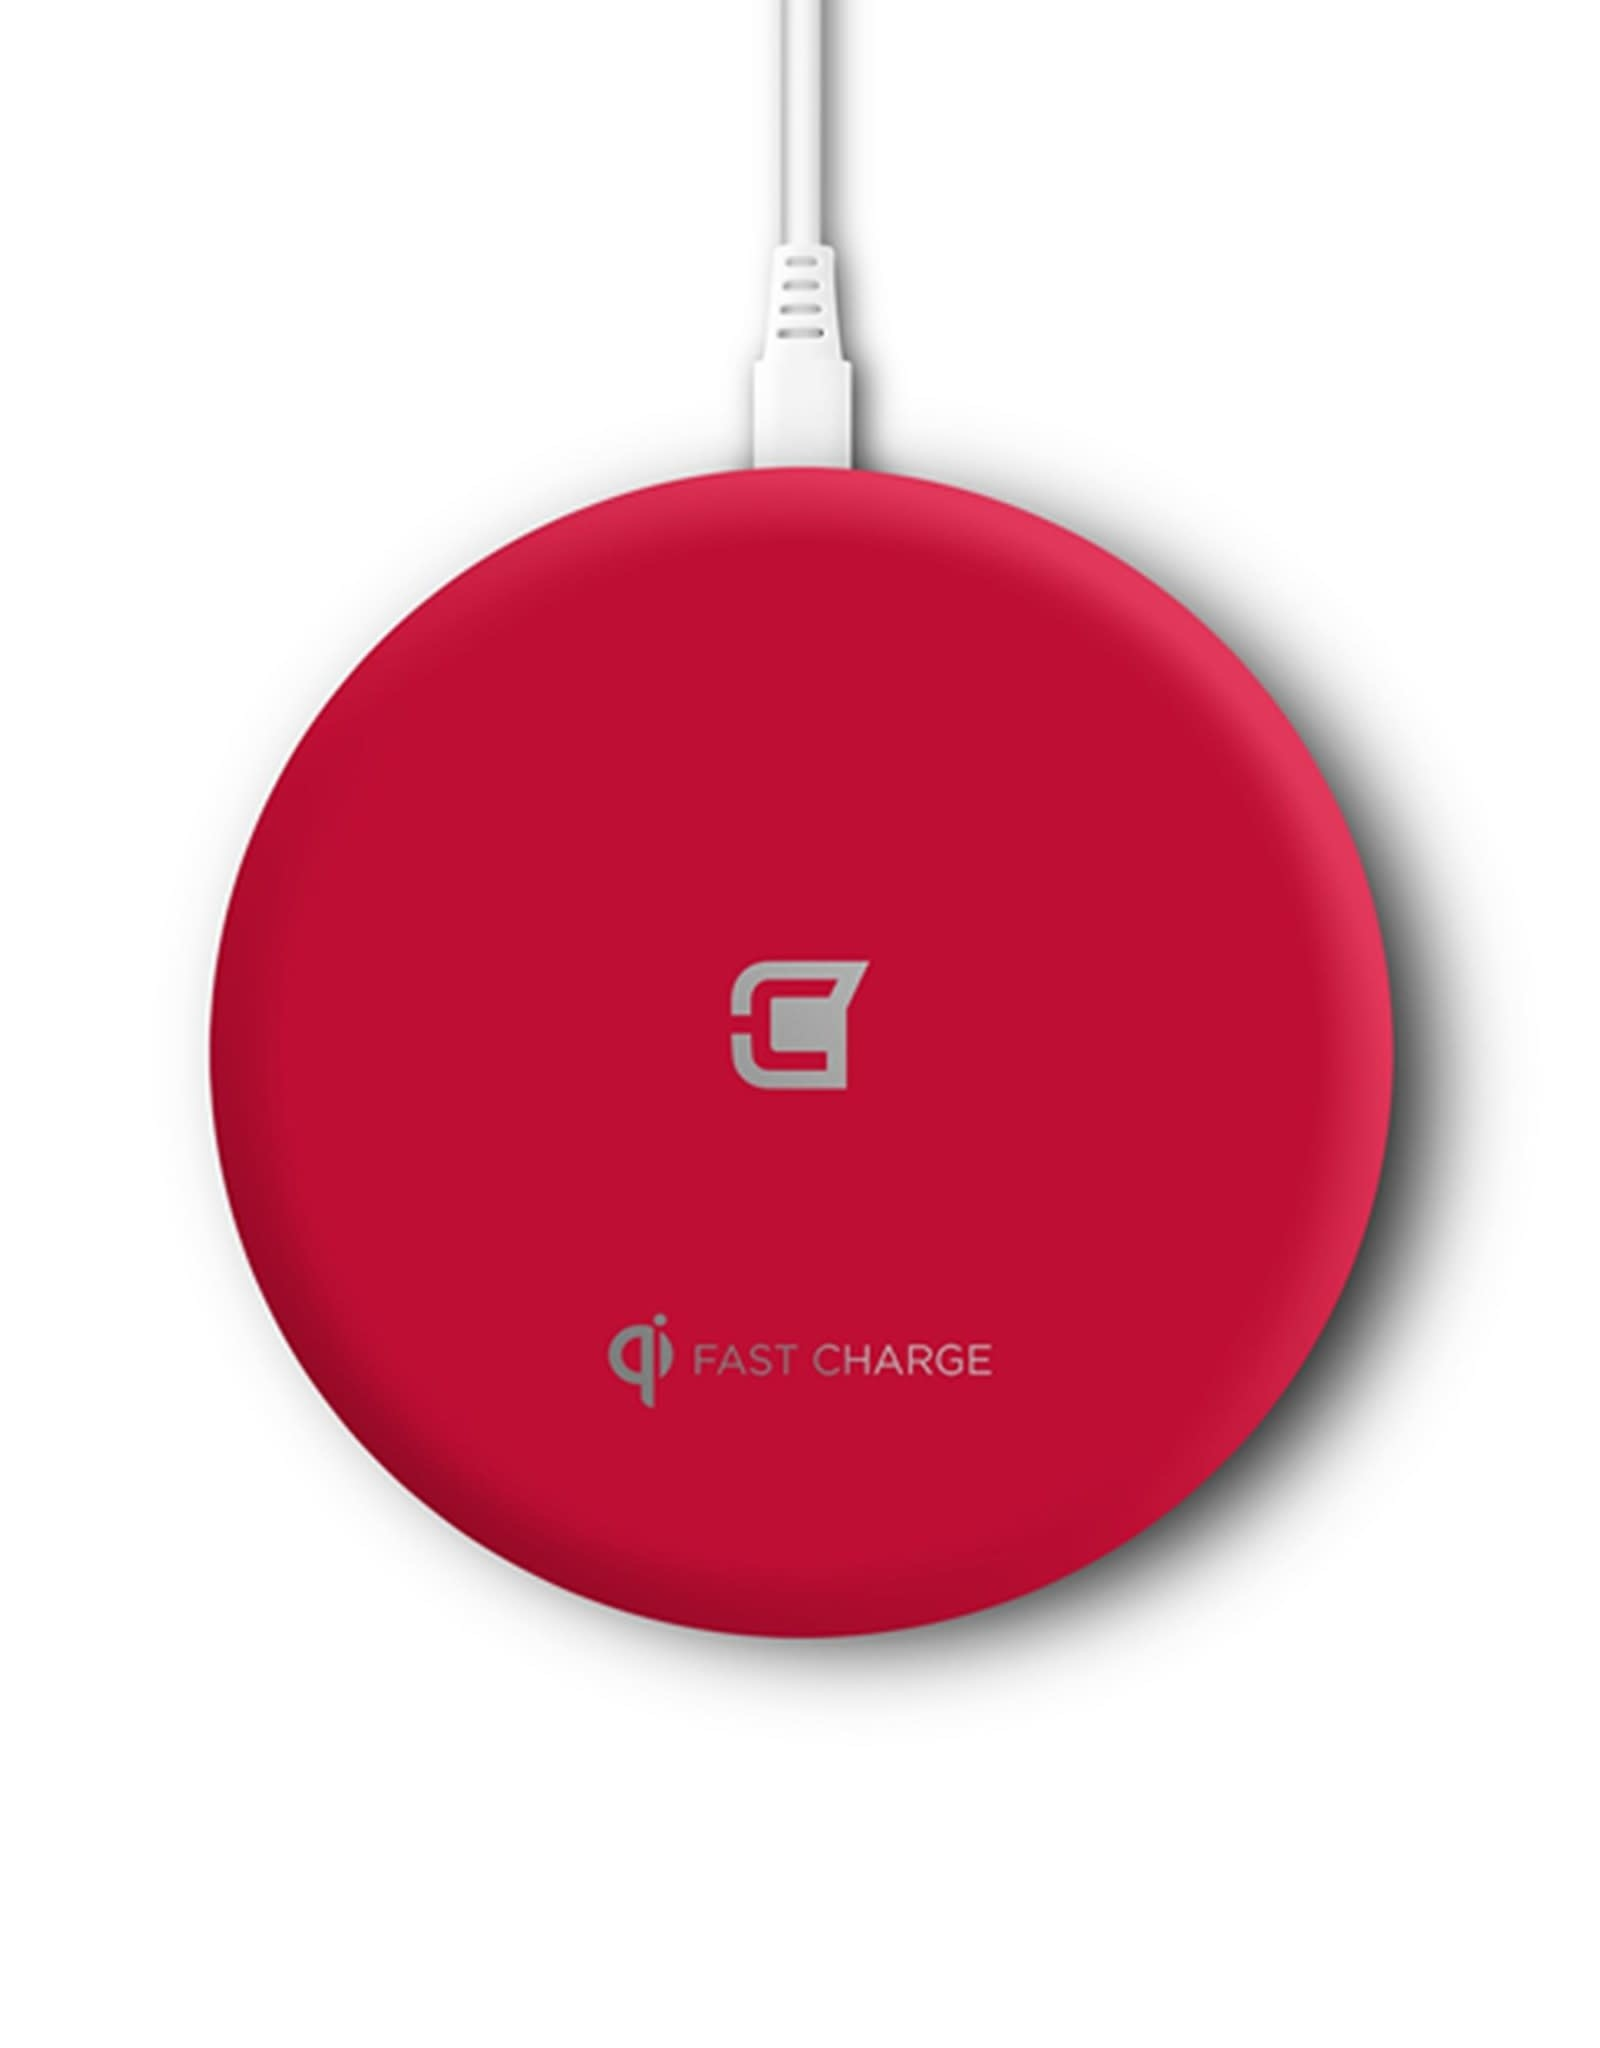 Caseco Caseco Nitro II 10W Fast Wireless Charger For Android & IOS Apple Red  C0710-03